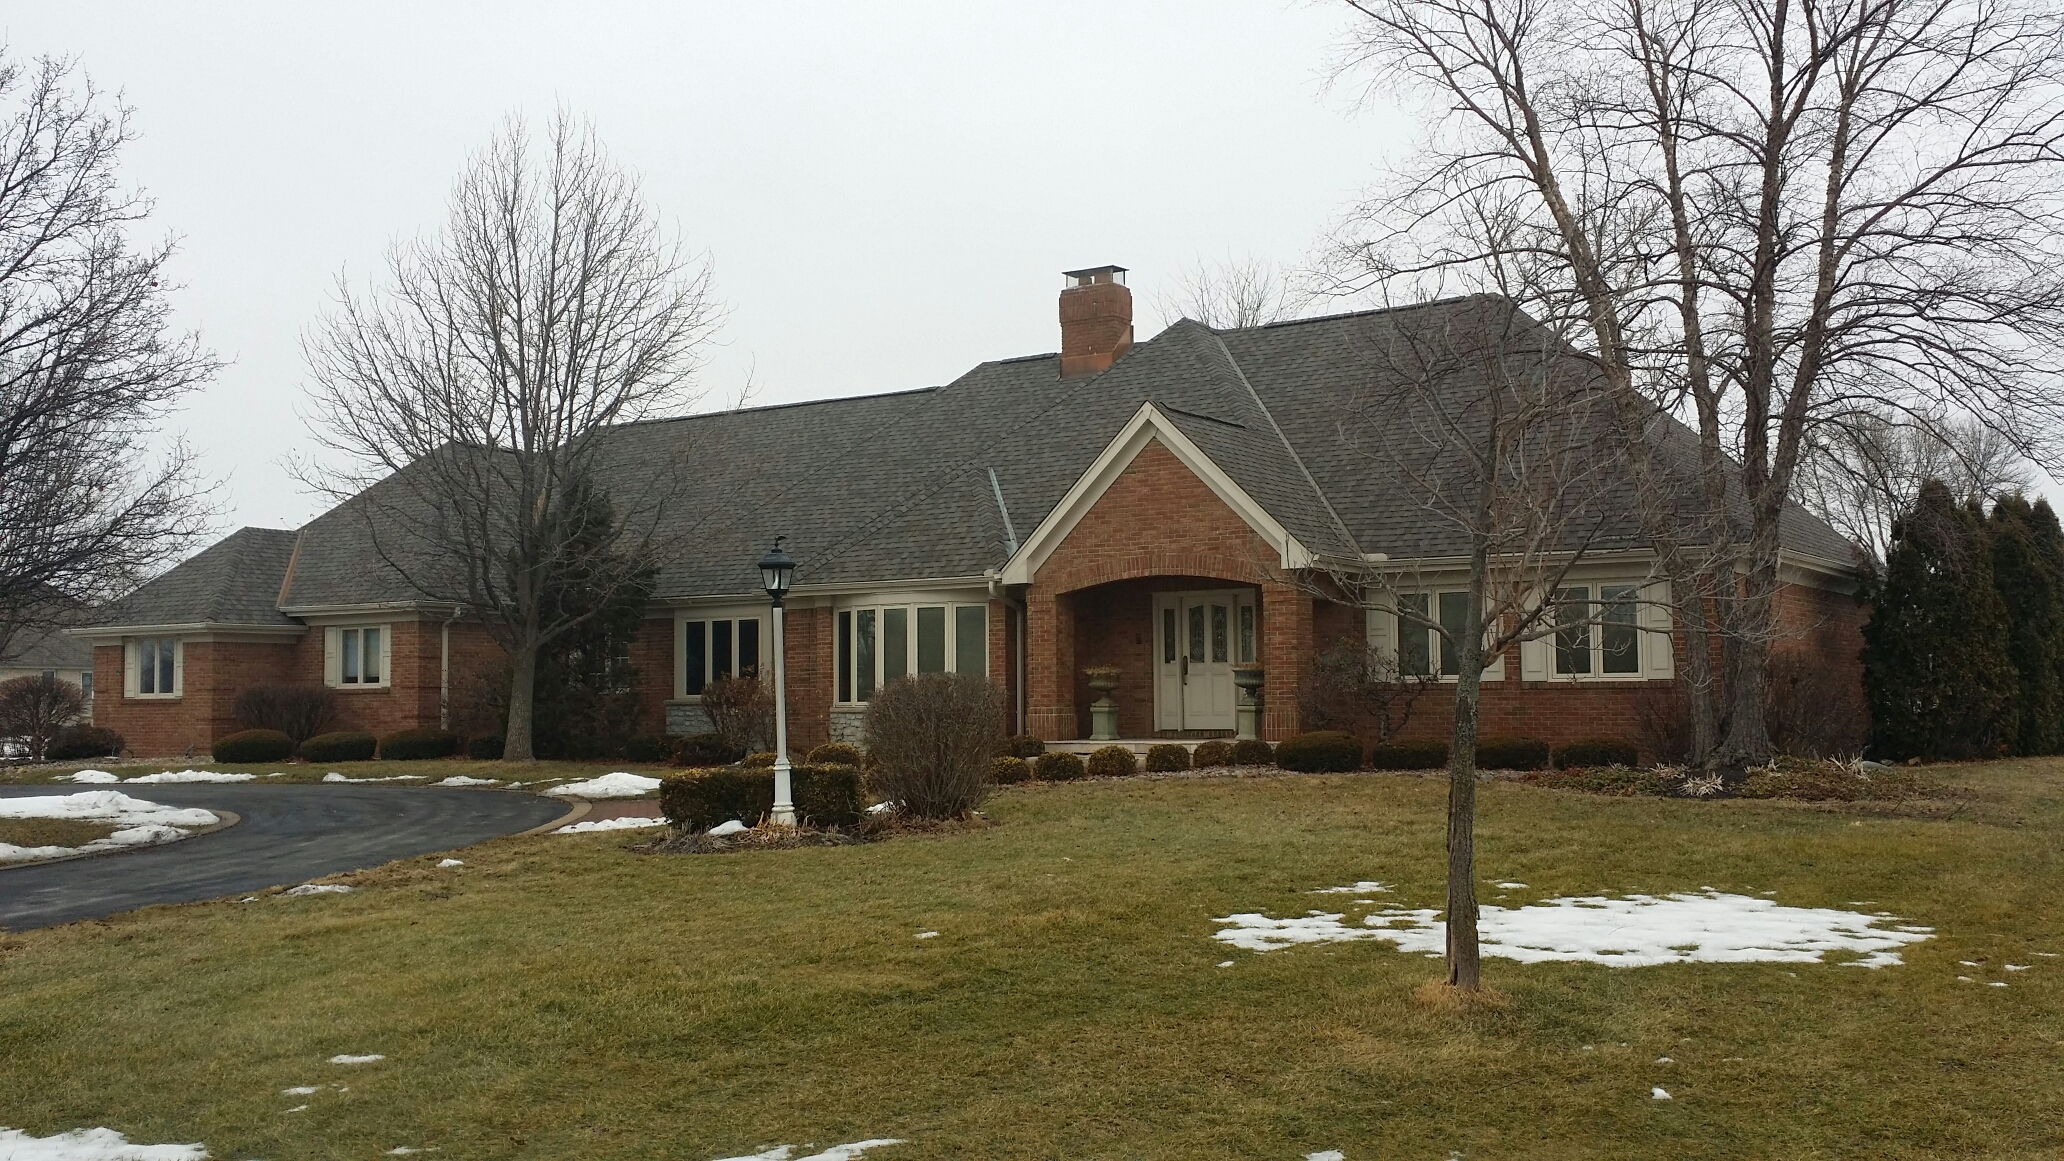 Highland, IN - Certainteed Landmark weatherdwood shingle with copper valleys and copper chimney flashing.